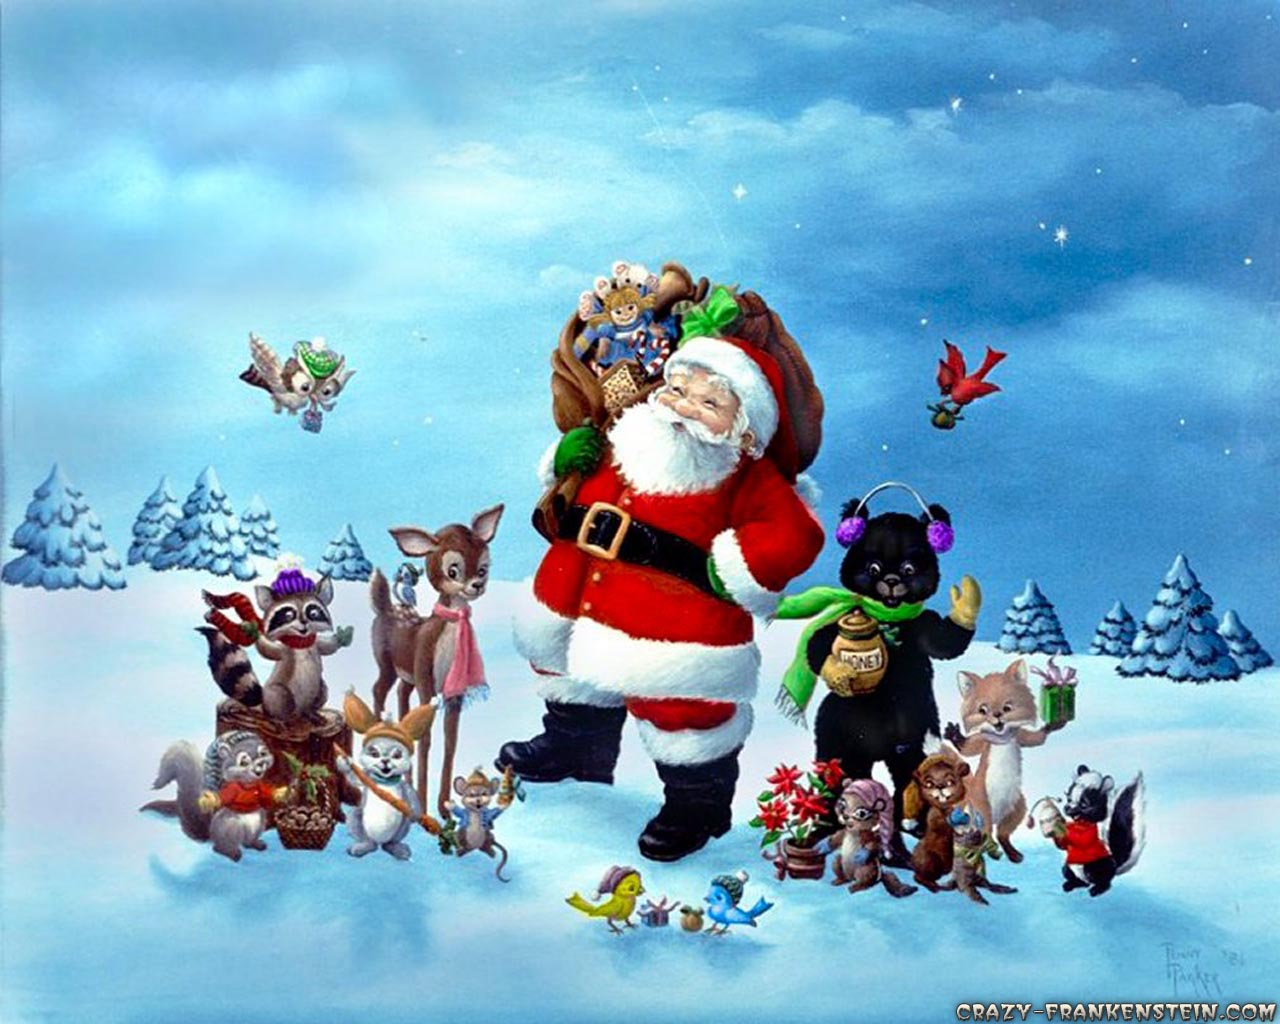 Crazy Frankenstein   Christmas Santa Claus wallpapers page 2 1280x1024